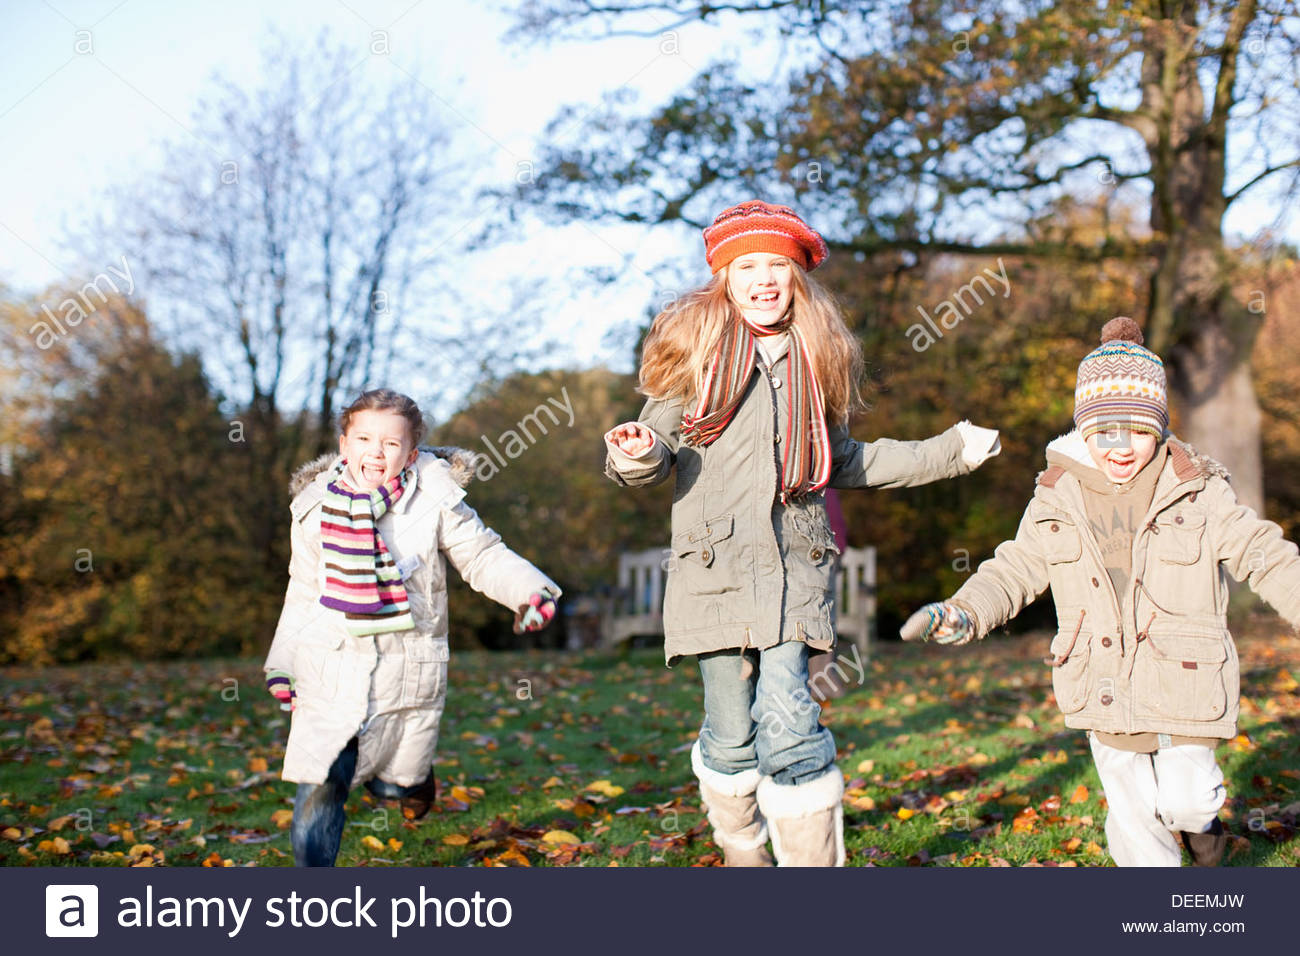 Children playing outdoors in autumn - Stock Image